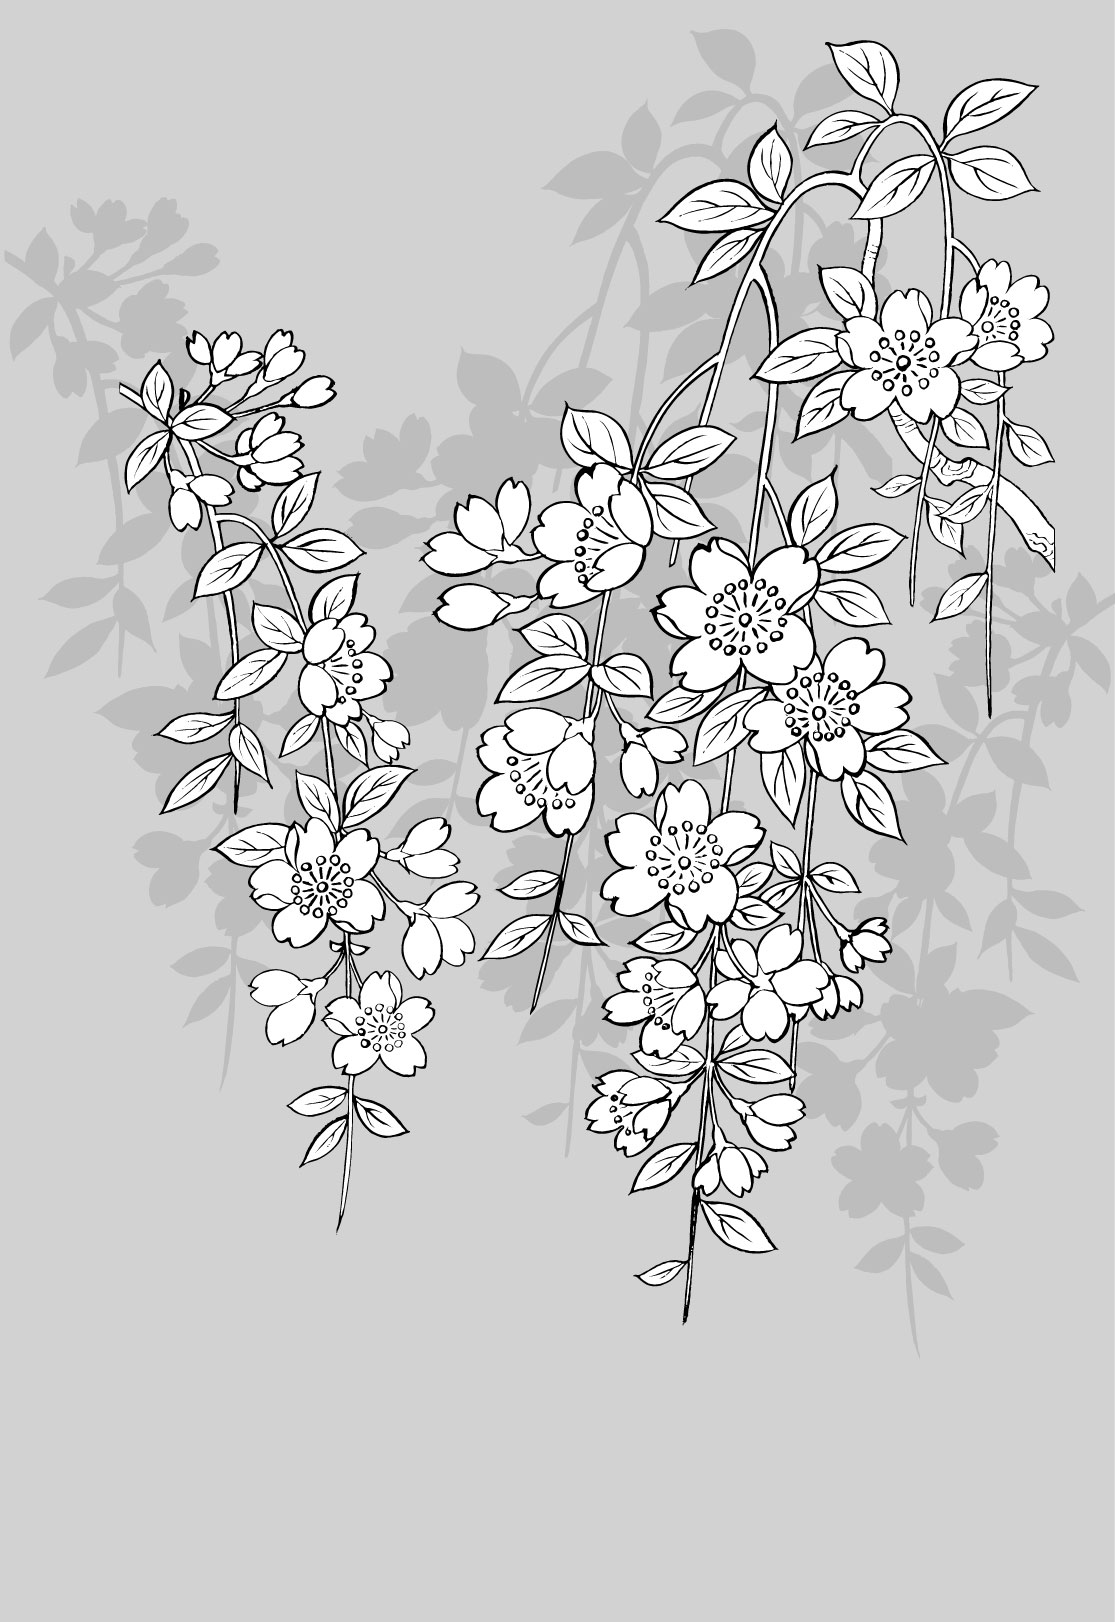 Japanese Flower Line Drawing : Garden flowers vector line art images flower